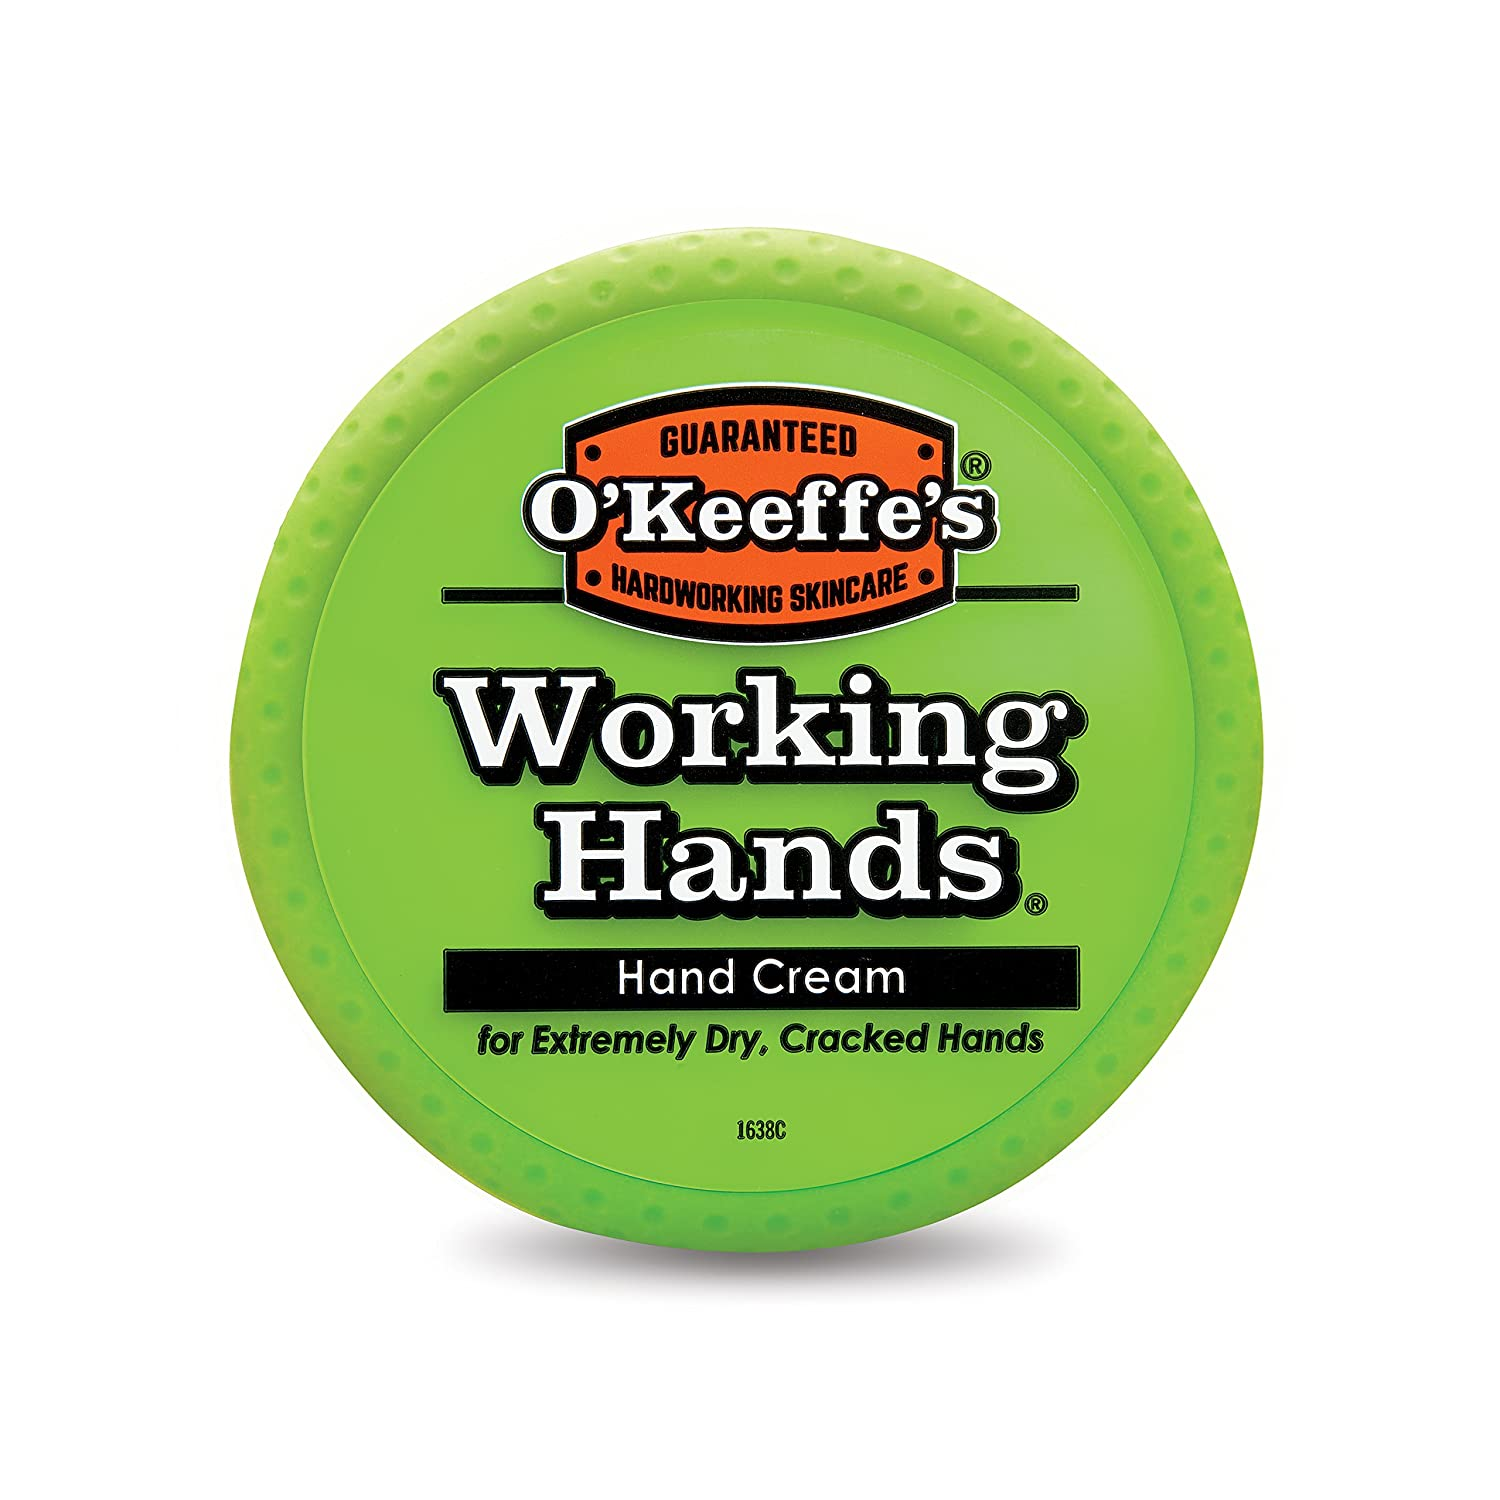 Amazoncom OKeeffes Working Hands Hand Cream Oz Jar - 20 funniest reviews ever written amazon 6 cracked